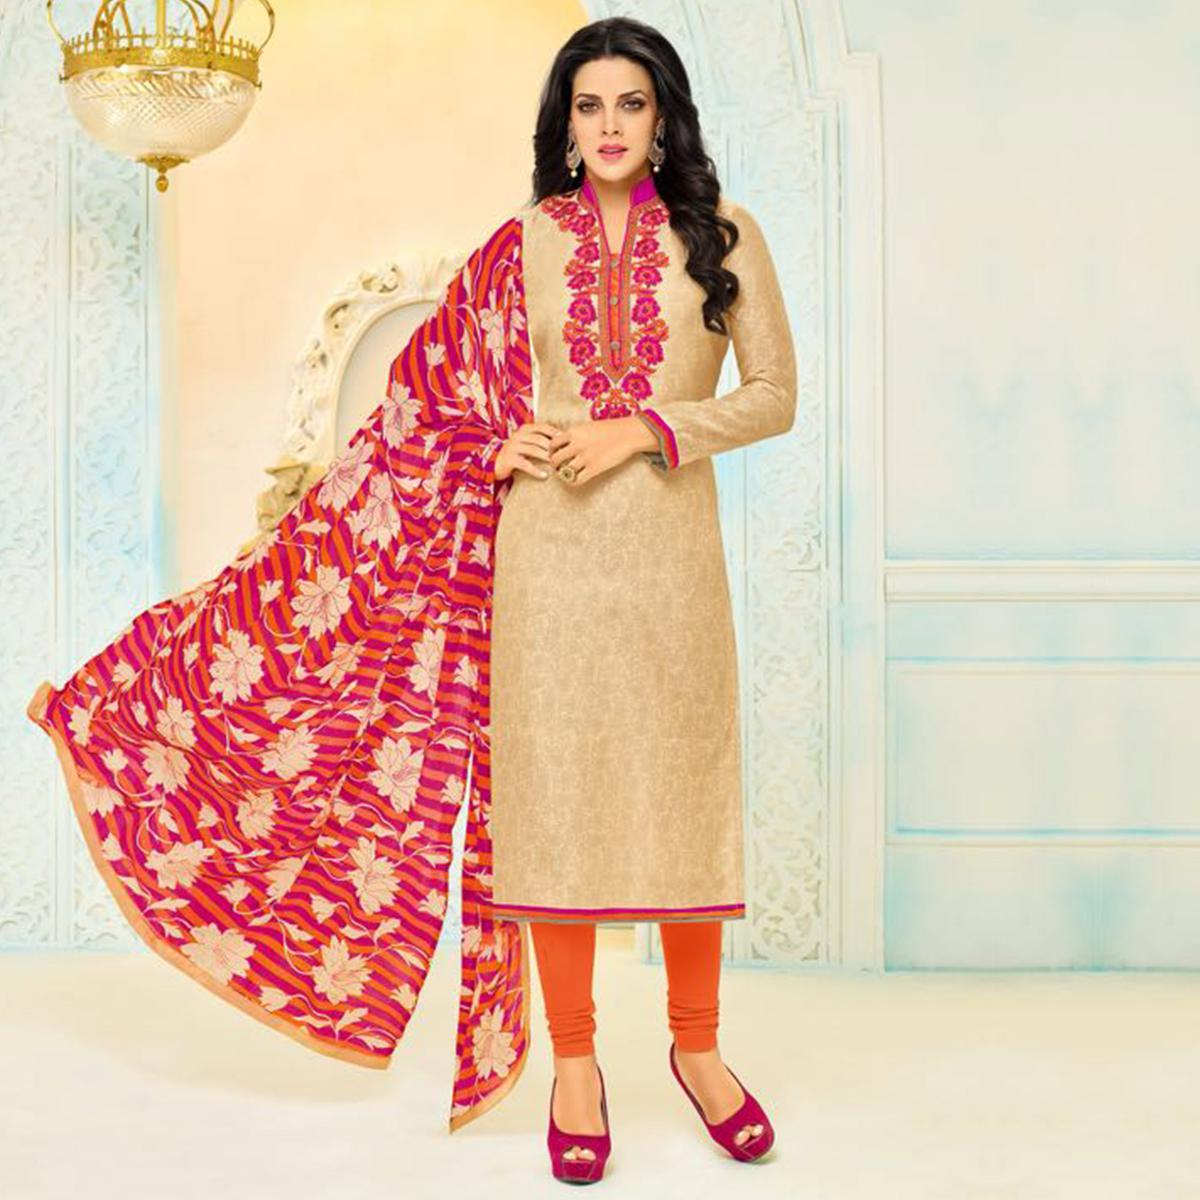 Elegant Beige Chanderi Cotton Floral Embroidered Suit